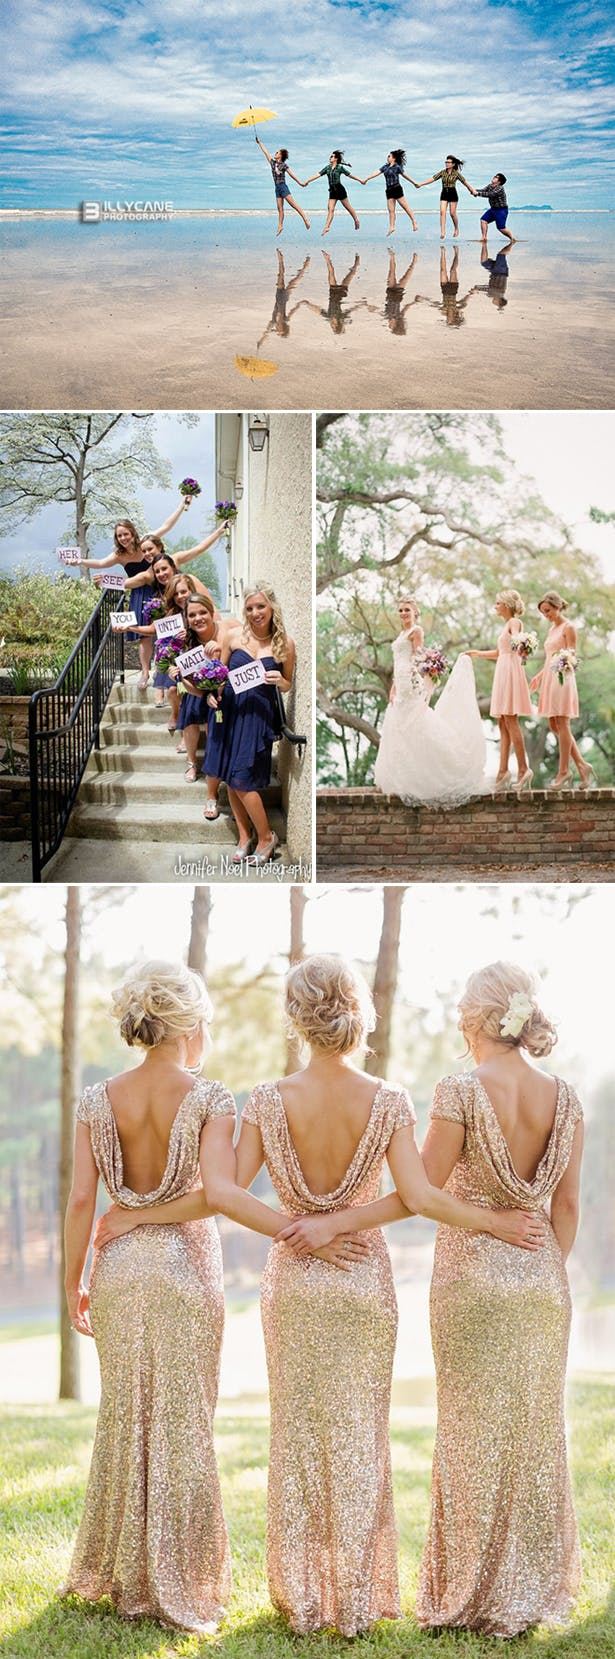 Creative Bridesmaid Photos | Confetti.co.uk